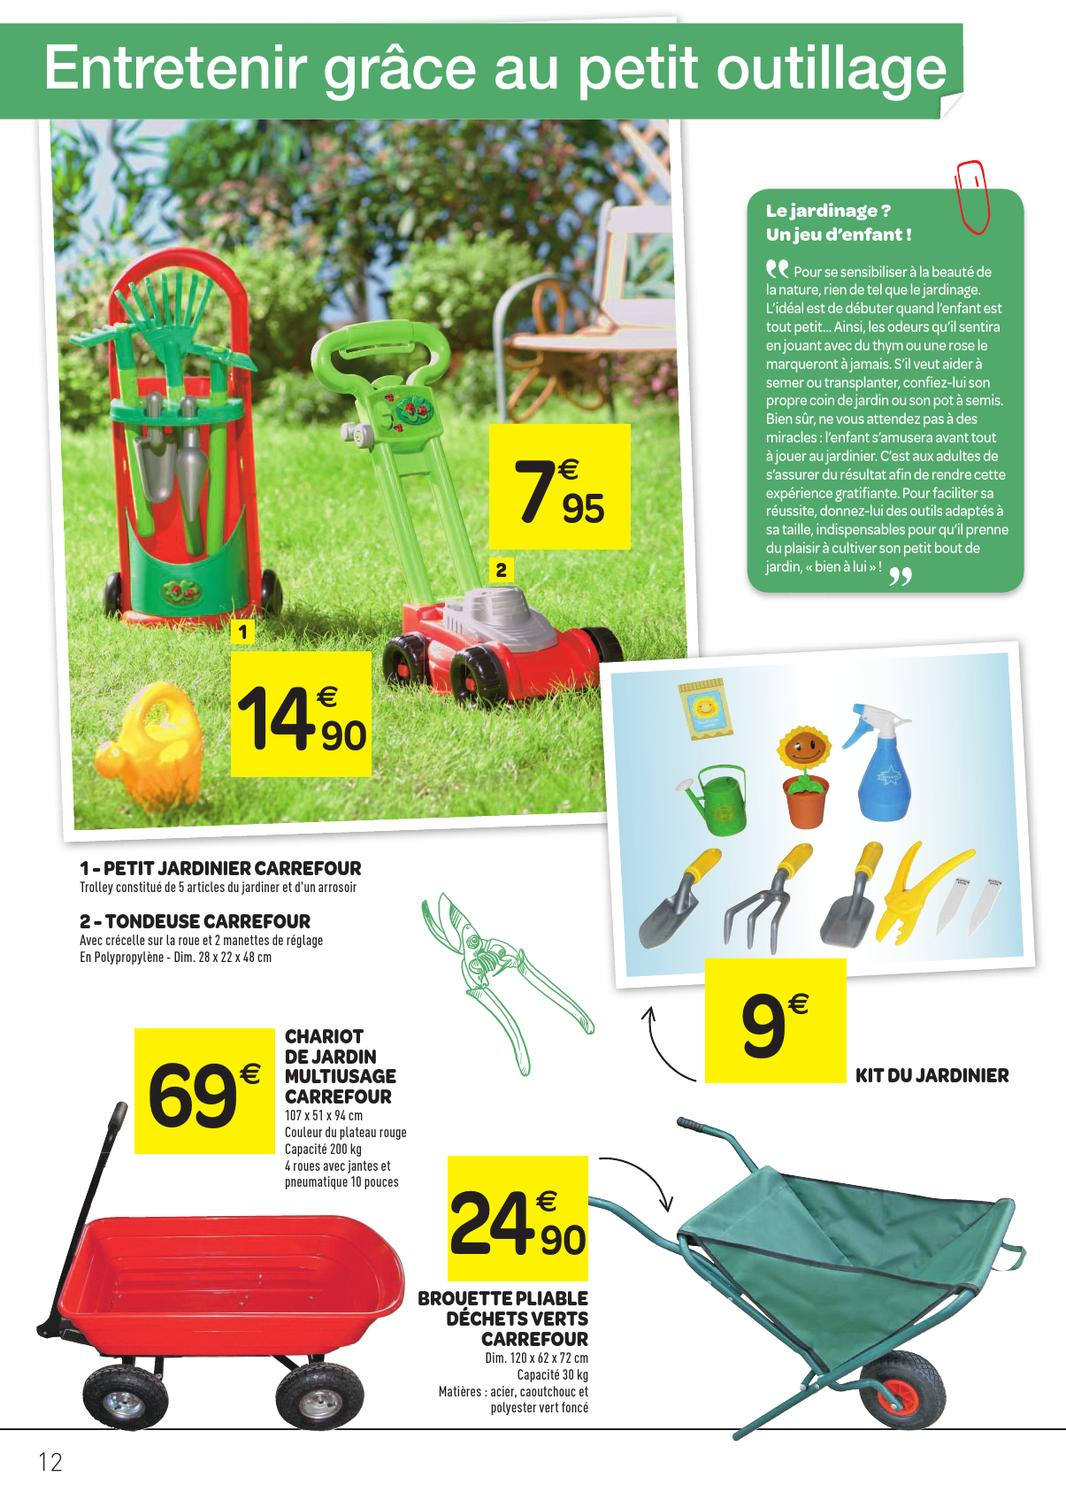 Carrefour 3 2013 2 By Proomo France Issuu